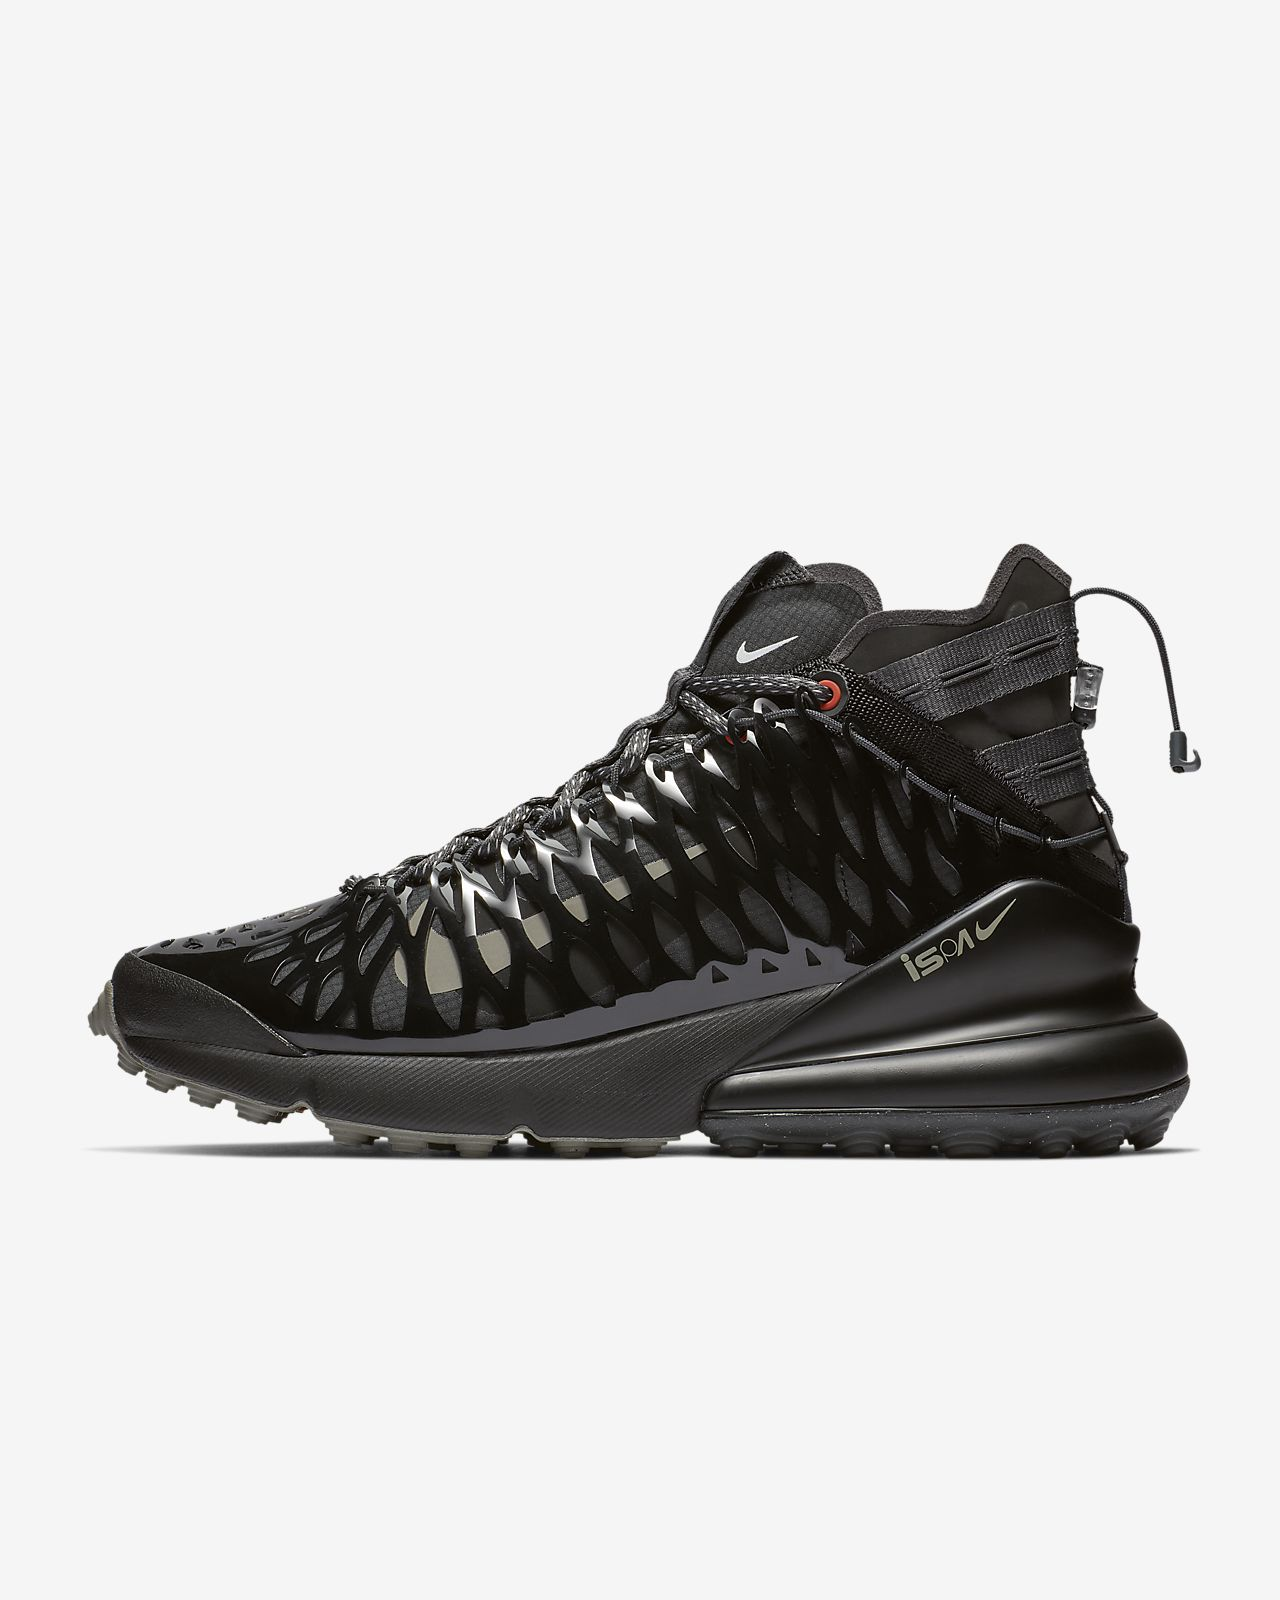 half off c2e53 ef0b8 ... Chaussure Nike Air Max 270 ISPA pour Homme